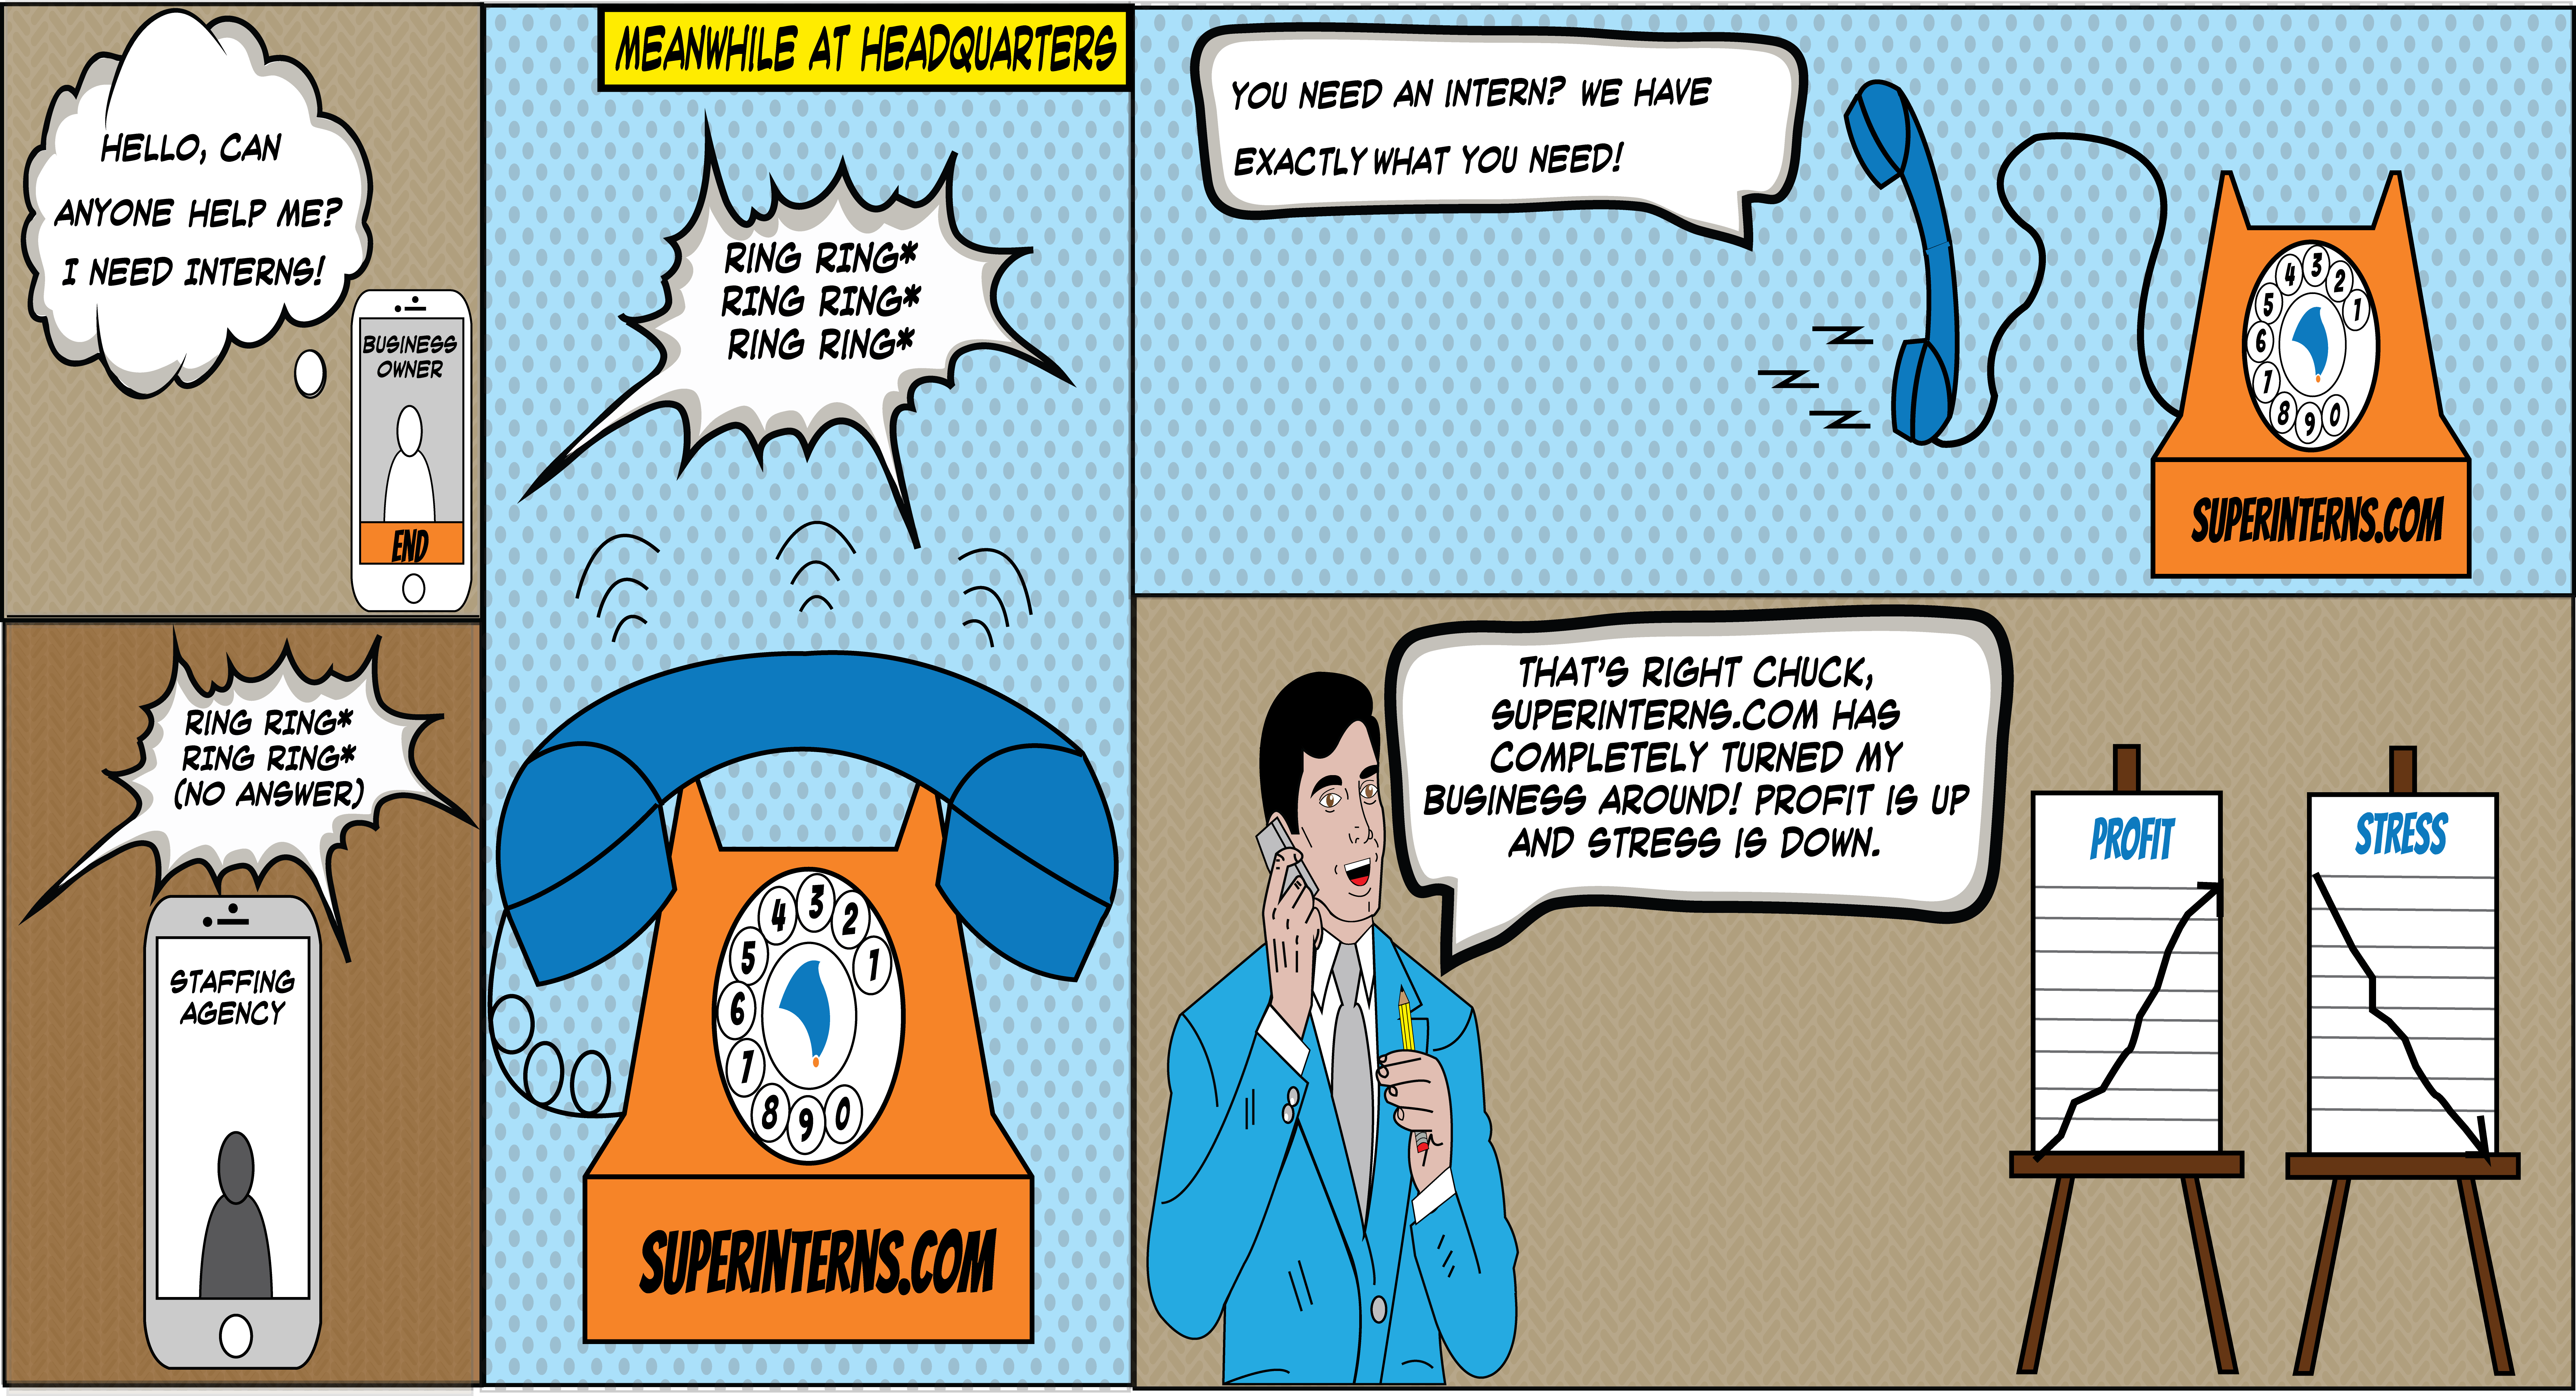 Slide 1 of comic. Slide shows a phone ringing that has a businessman needing interns. When he does get it, his profit rises.